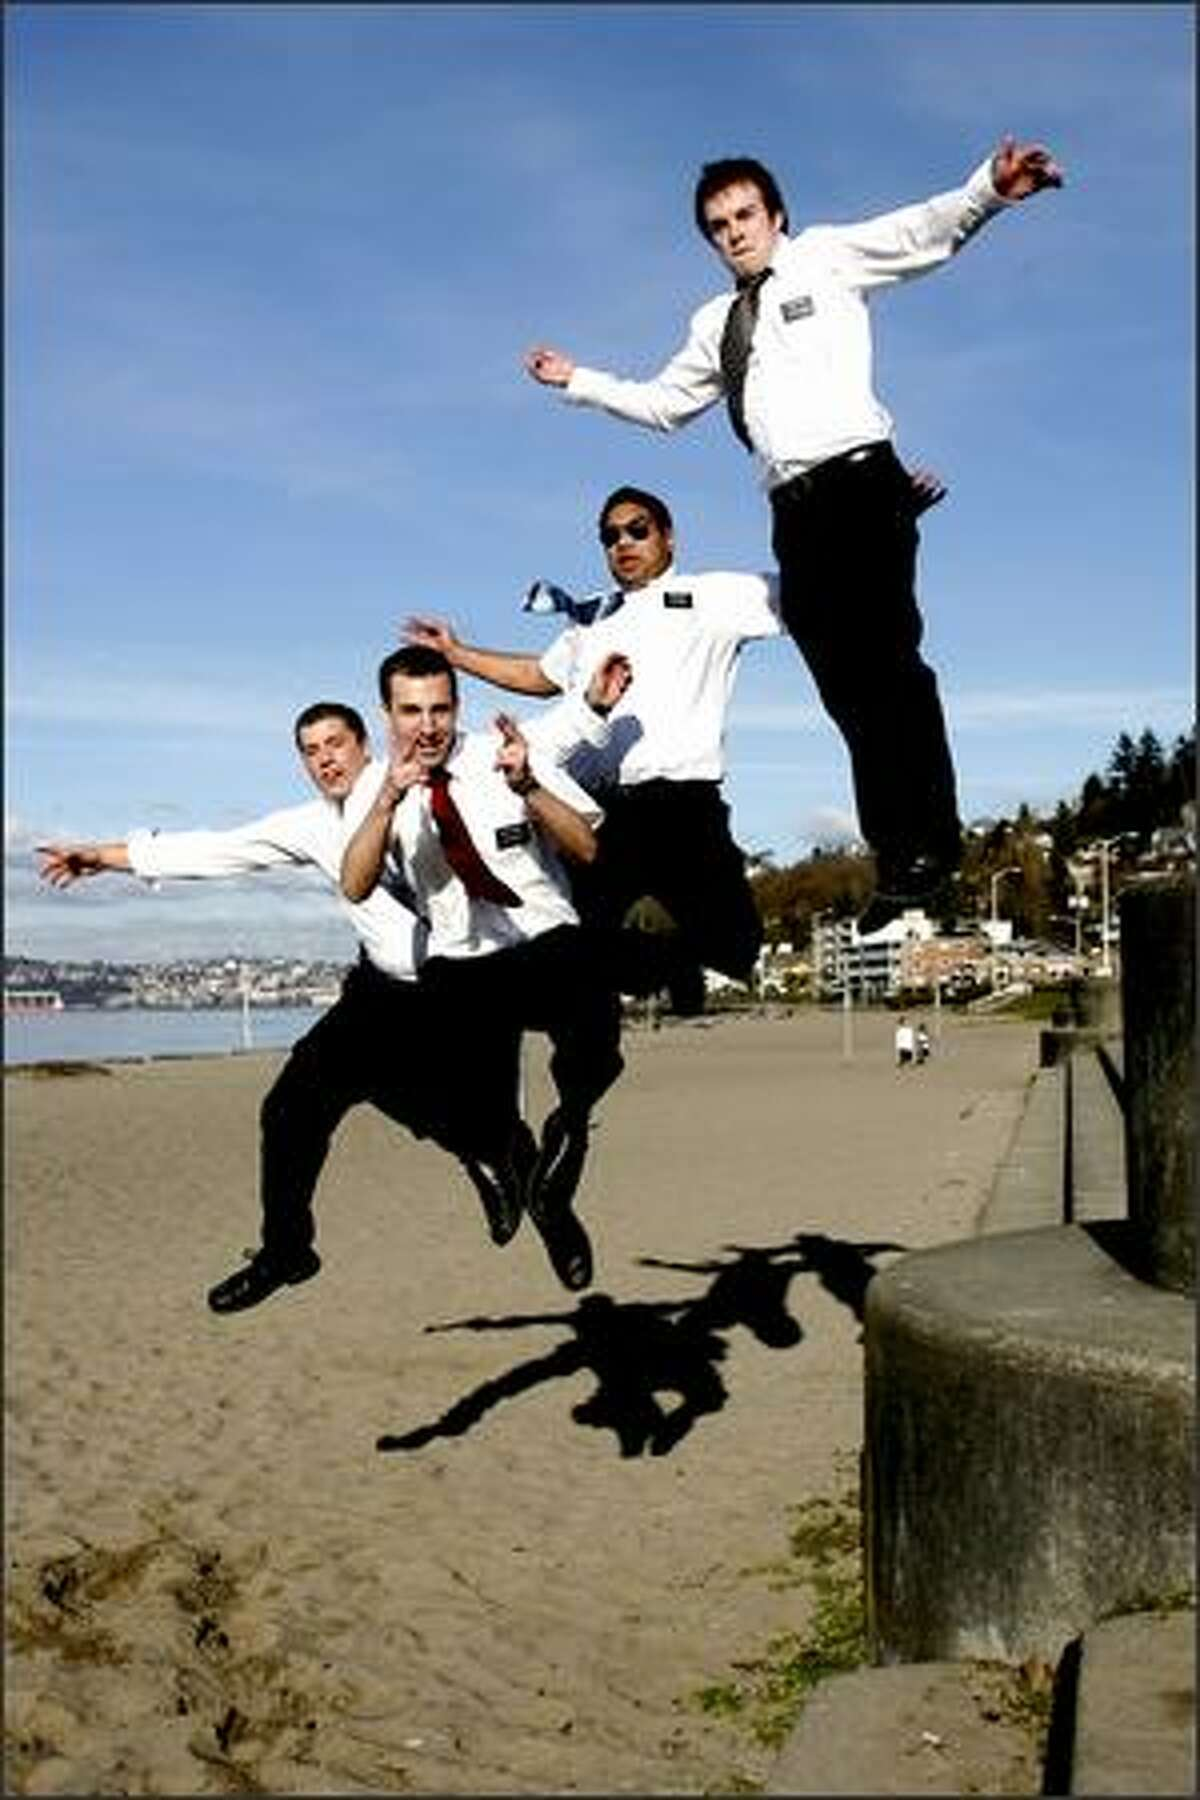 Missionaries from The Church of Jesus Christ of Latter-day Saints, from left, Elders Beck, Cochkrell, Samani and Scott leap in honor of Leap Day at Alki Beach. Urban: I was doing a funky little photo essay on Leap Year. I drove around the entire city asking folks to give me their best leap. I was amazed how jazzed these guys were about the concept. It took only about four tries to get this photo. They were great sports.